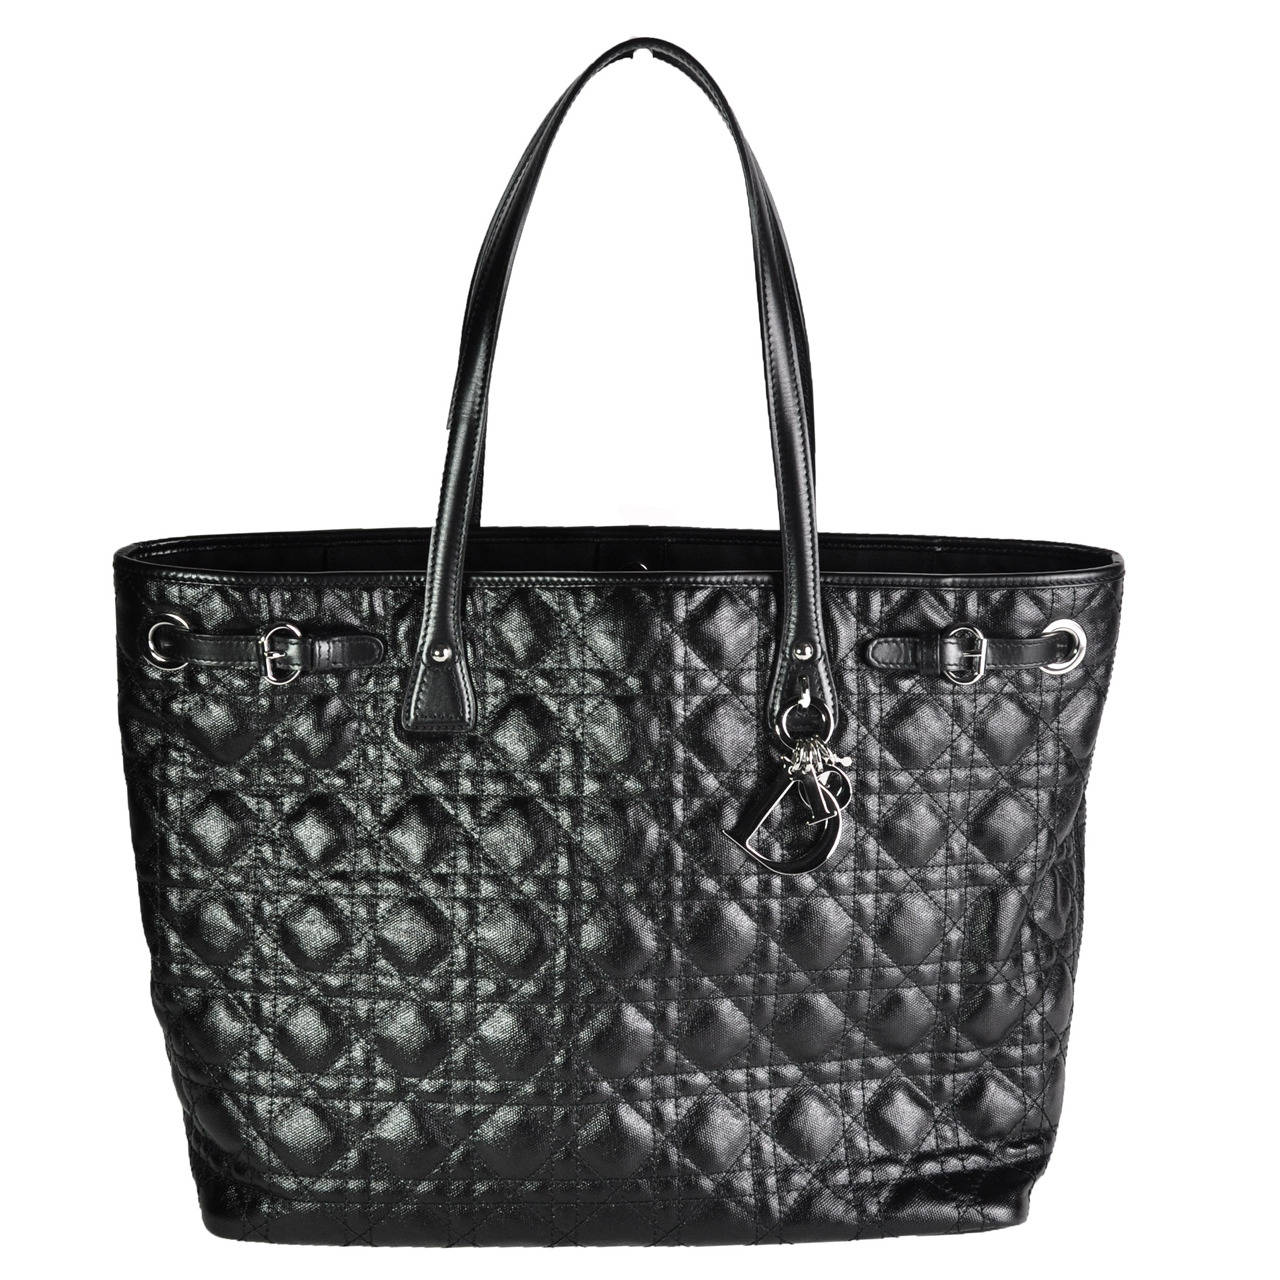 1e8f71862d3d5 Christian Dior Tote Bag Canvas   Stanford Center for Opportunity ...